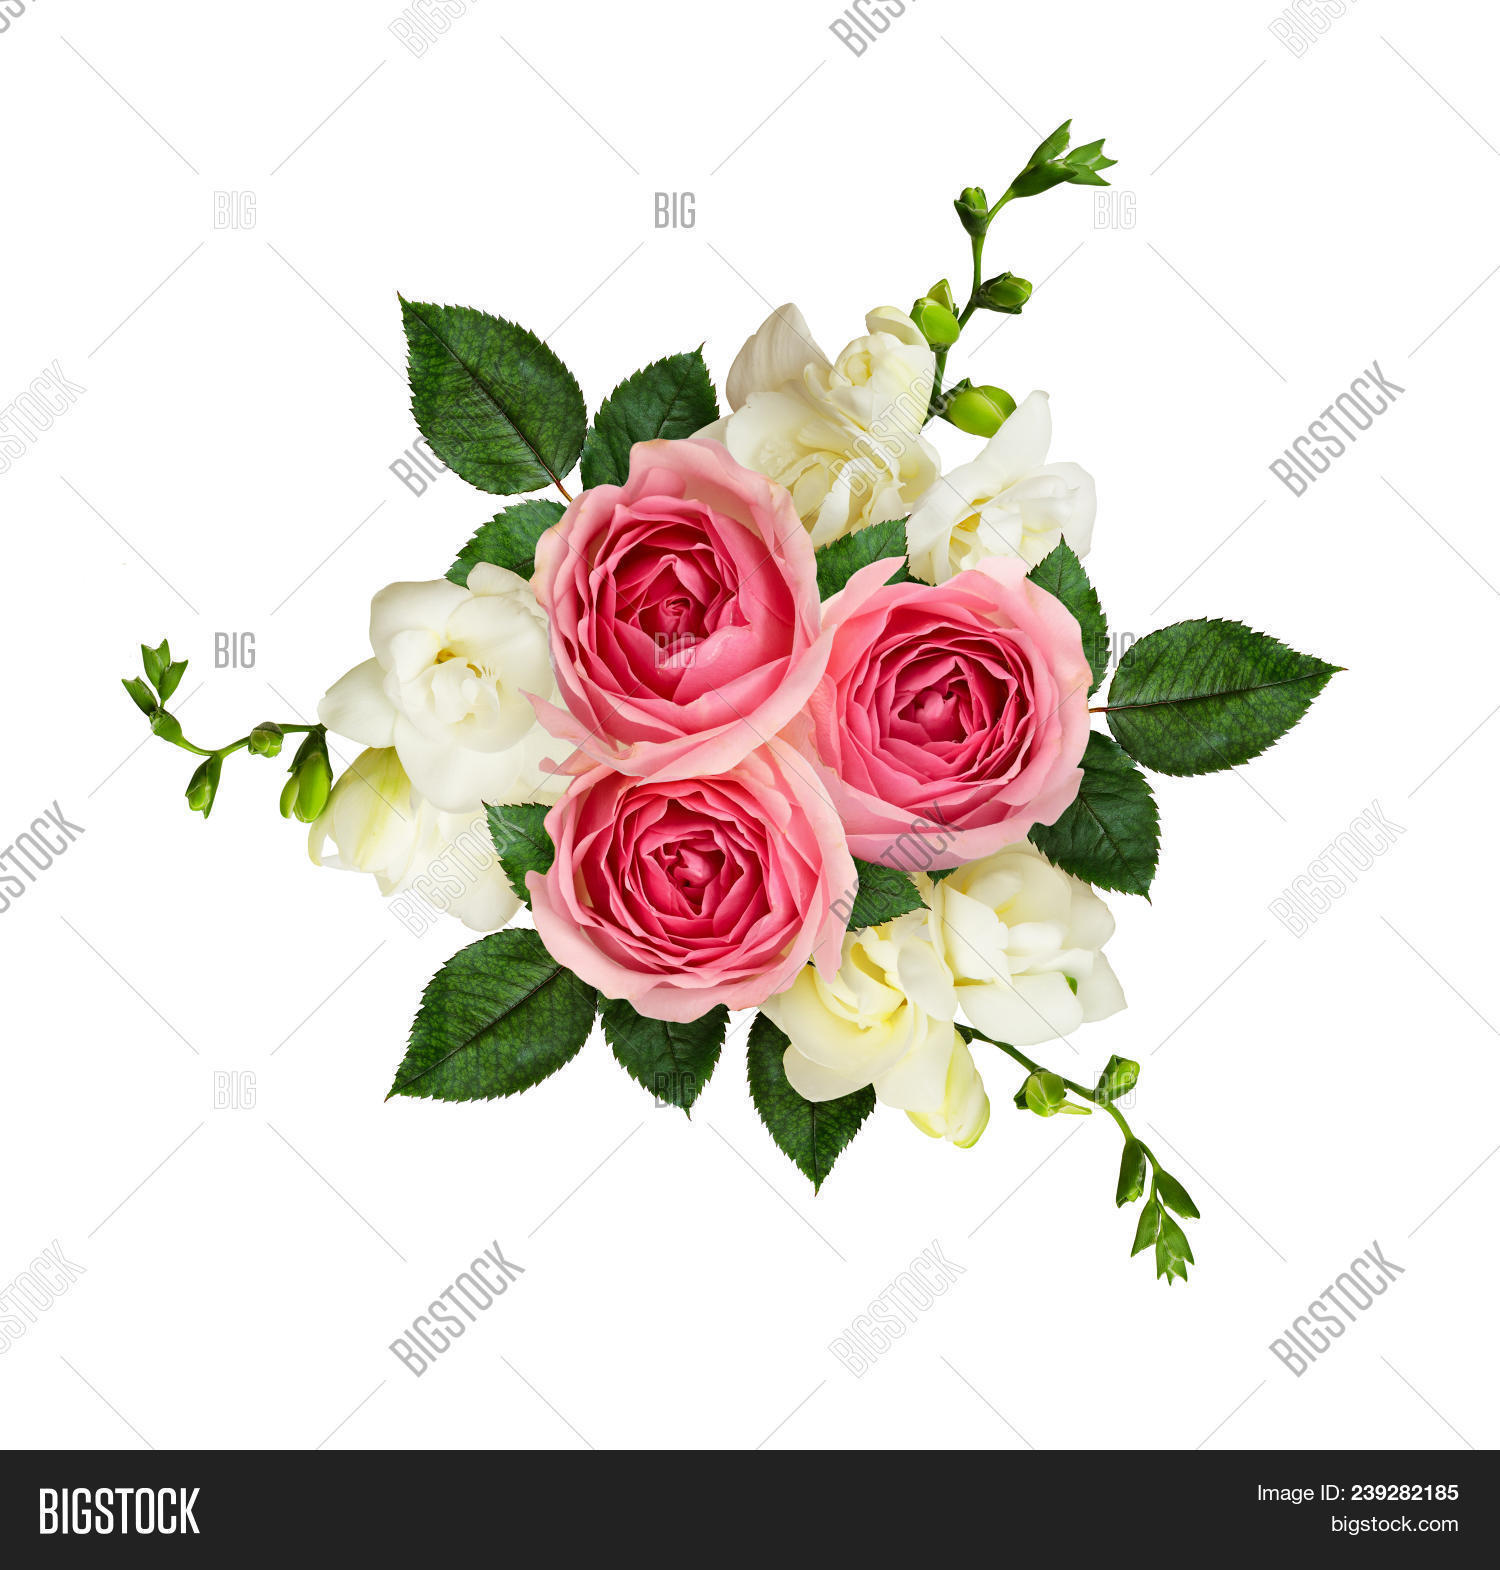 Pink roses freesia flowers bouquet image photo bigstock pink roses and freesia flowers in a bouquet isolated on white top view flat izmirmasajfo